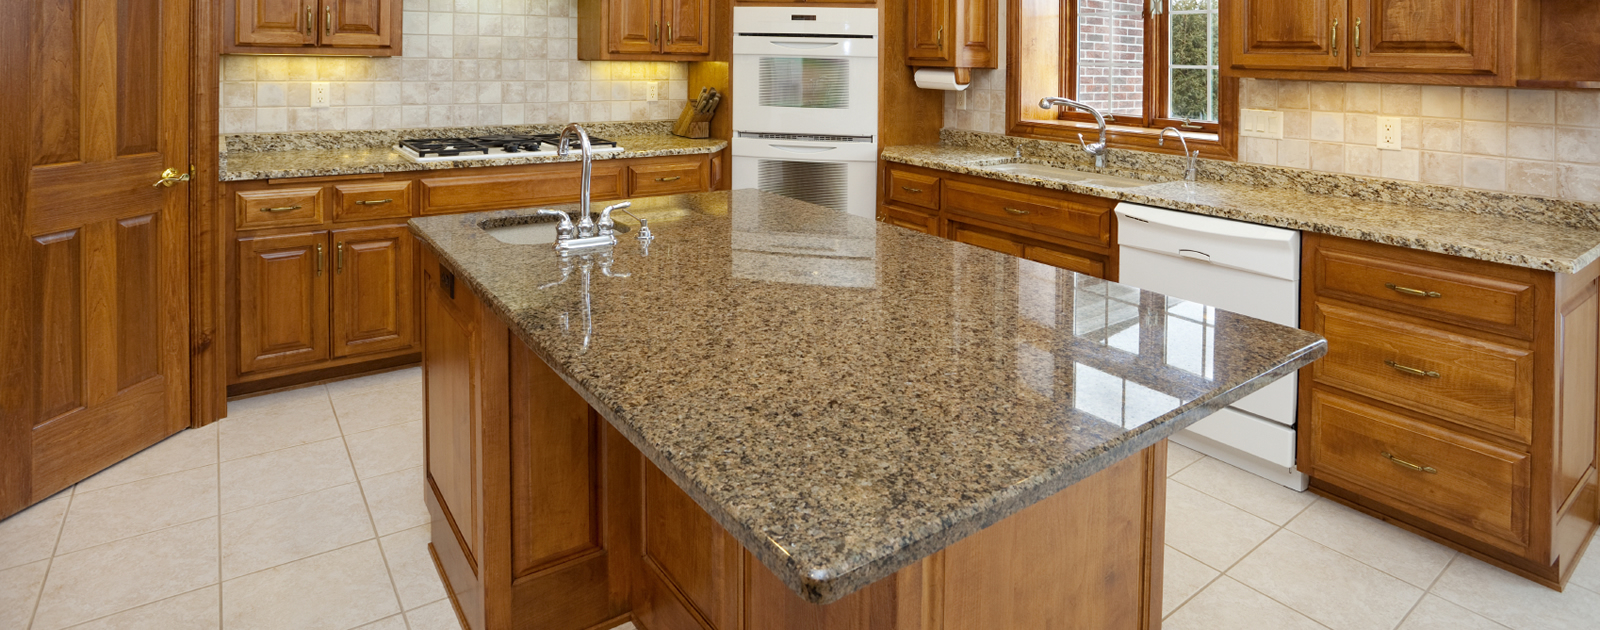 reviews installation stellar recent home granite current countertop cost diamond silestone quartz snow depot cheap countertops portrait install average